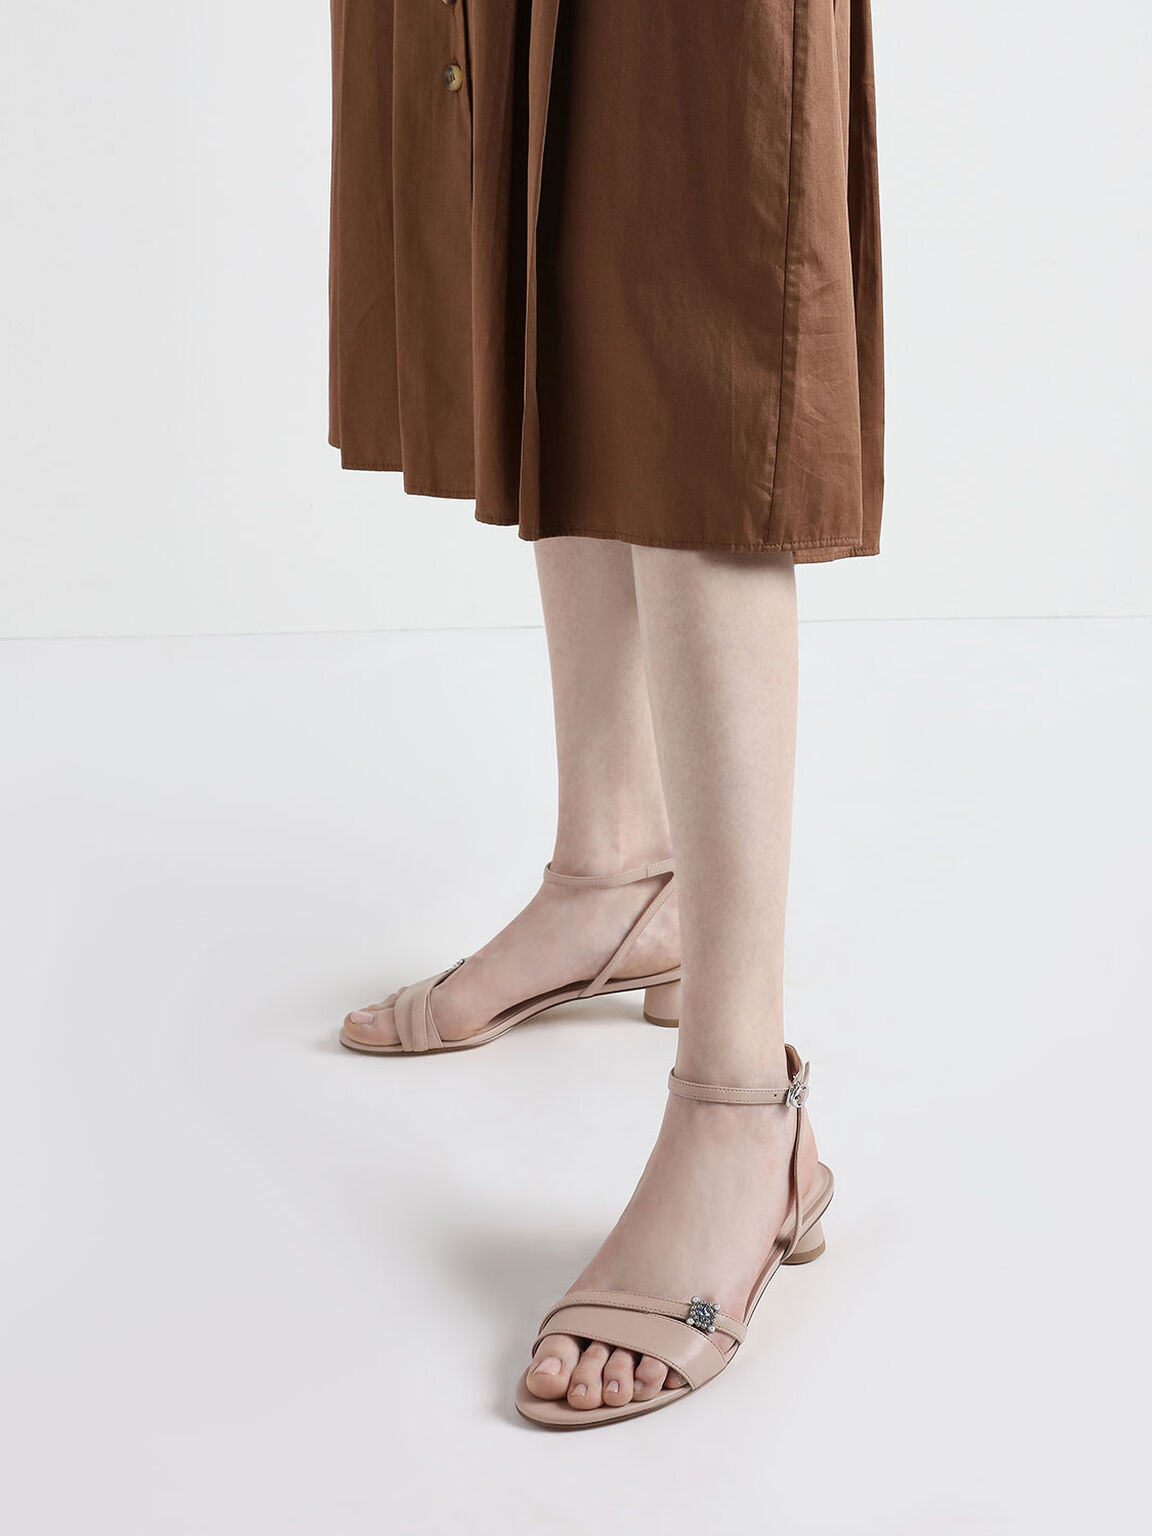 Gem Embellished Cylindrical Heel Sandals, Nude, hi-res